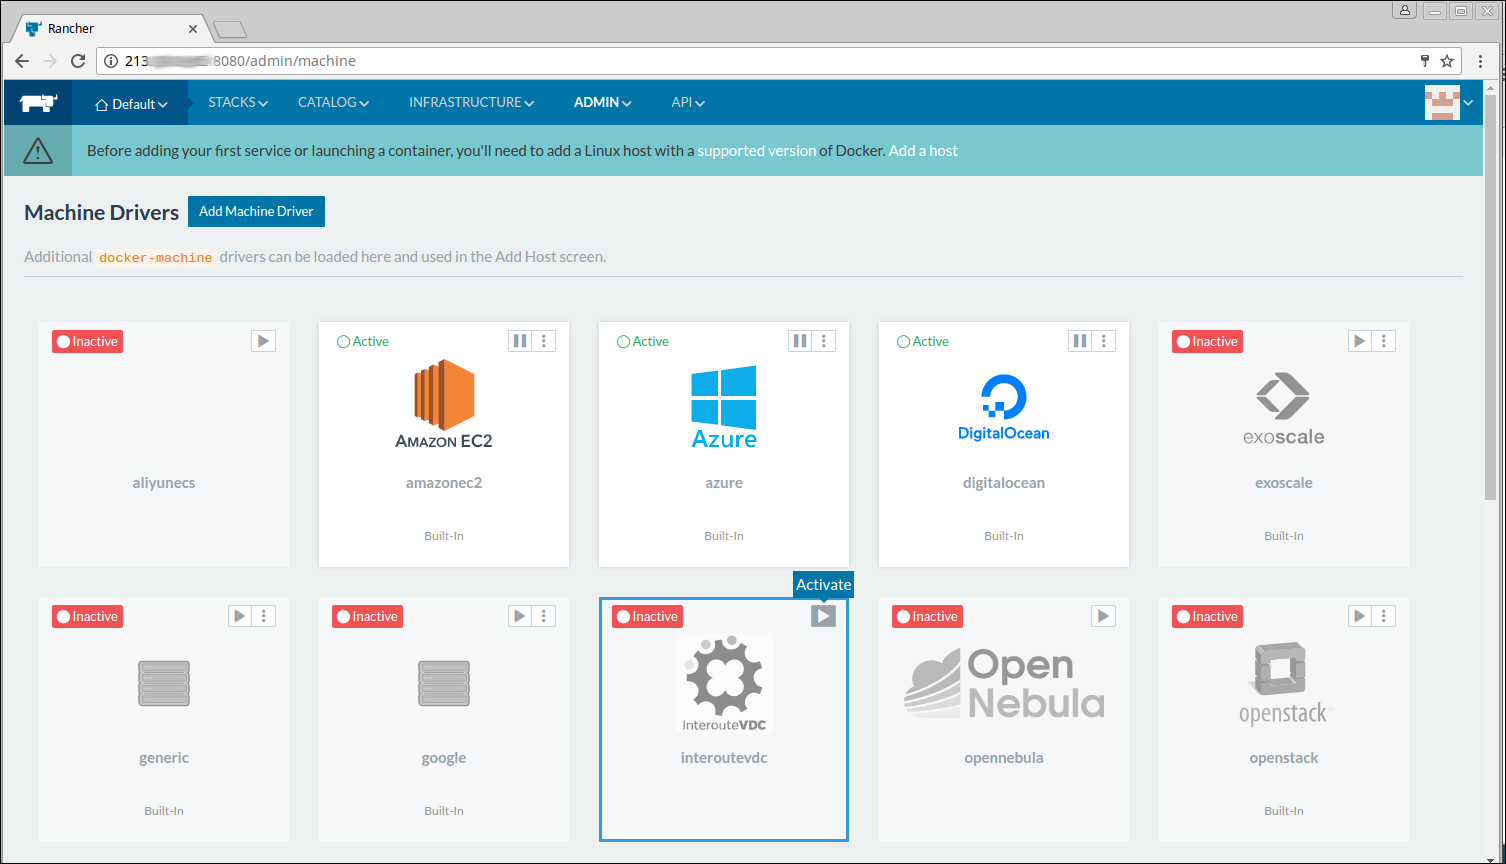 How to set up Rancher for container orchestration in VDC